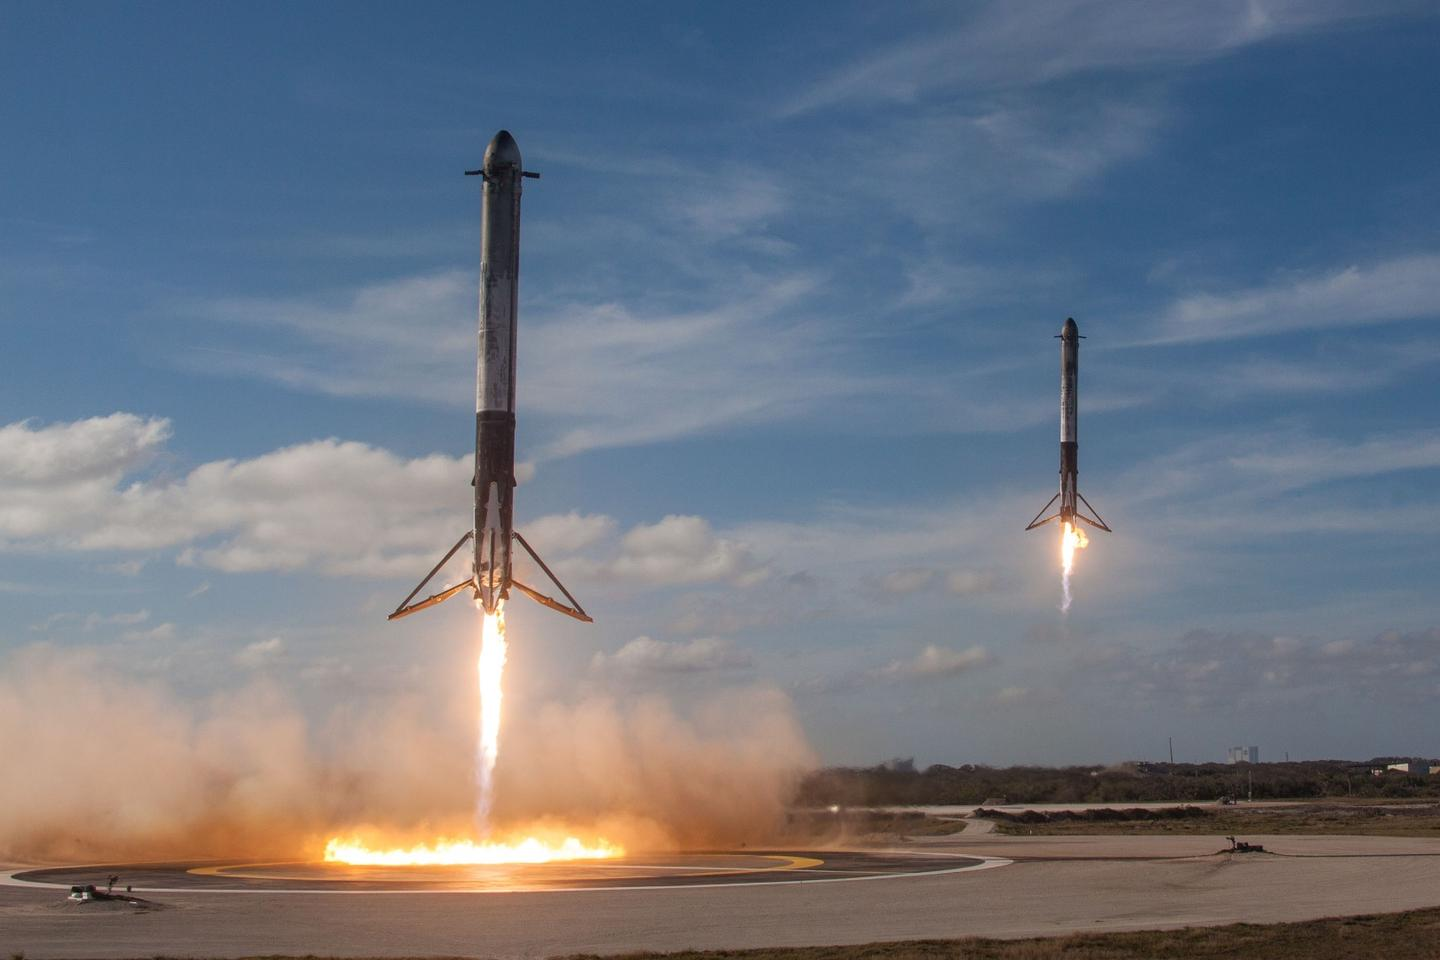 Falcon Heavy side boosters landing at Cape Canaveral